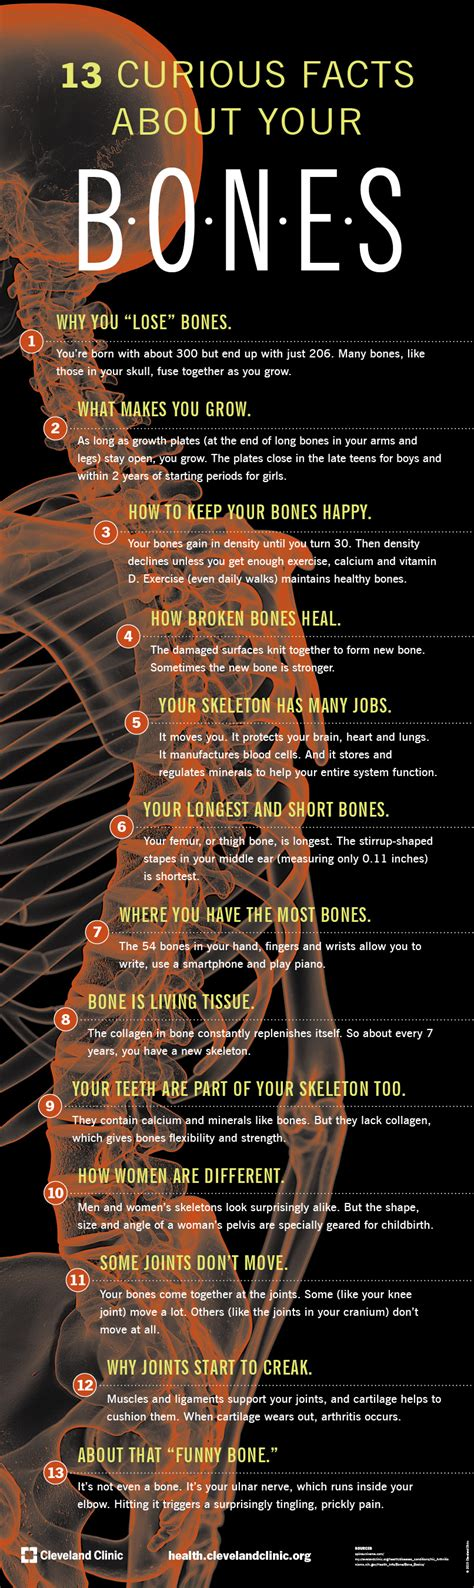 13 strange and interesting facts about your bones infographic interesting facts